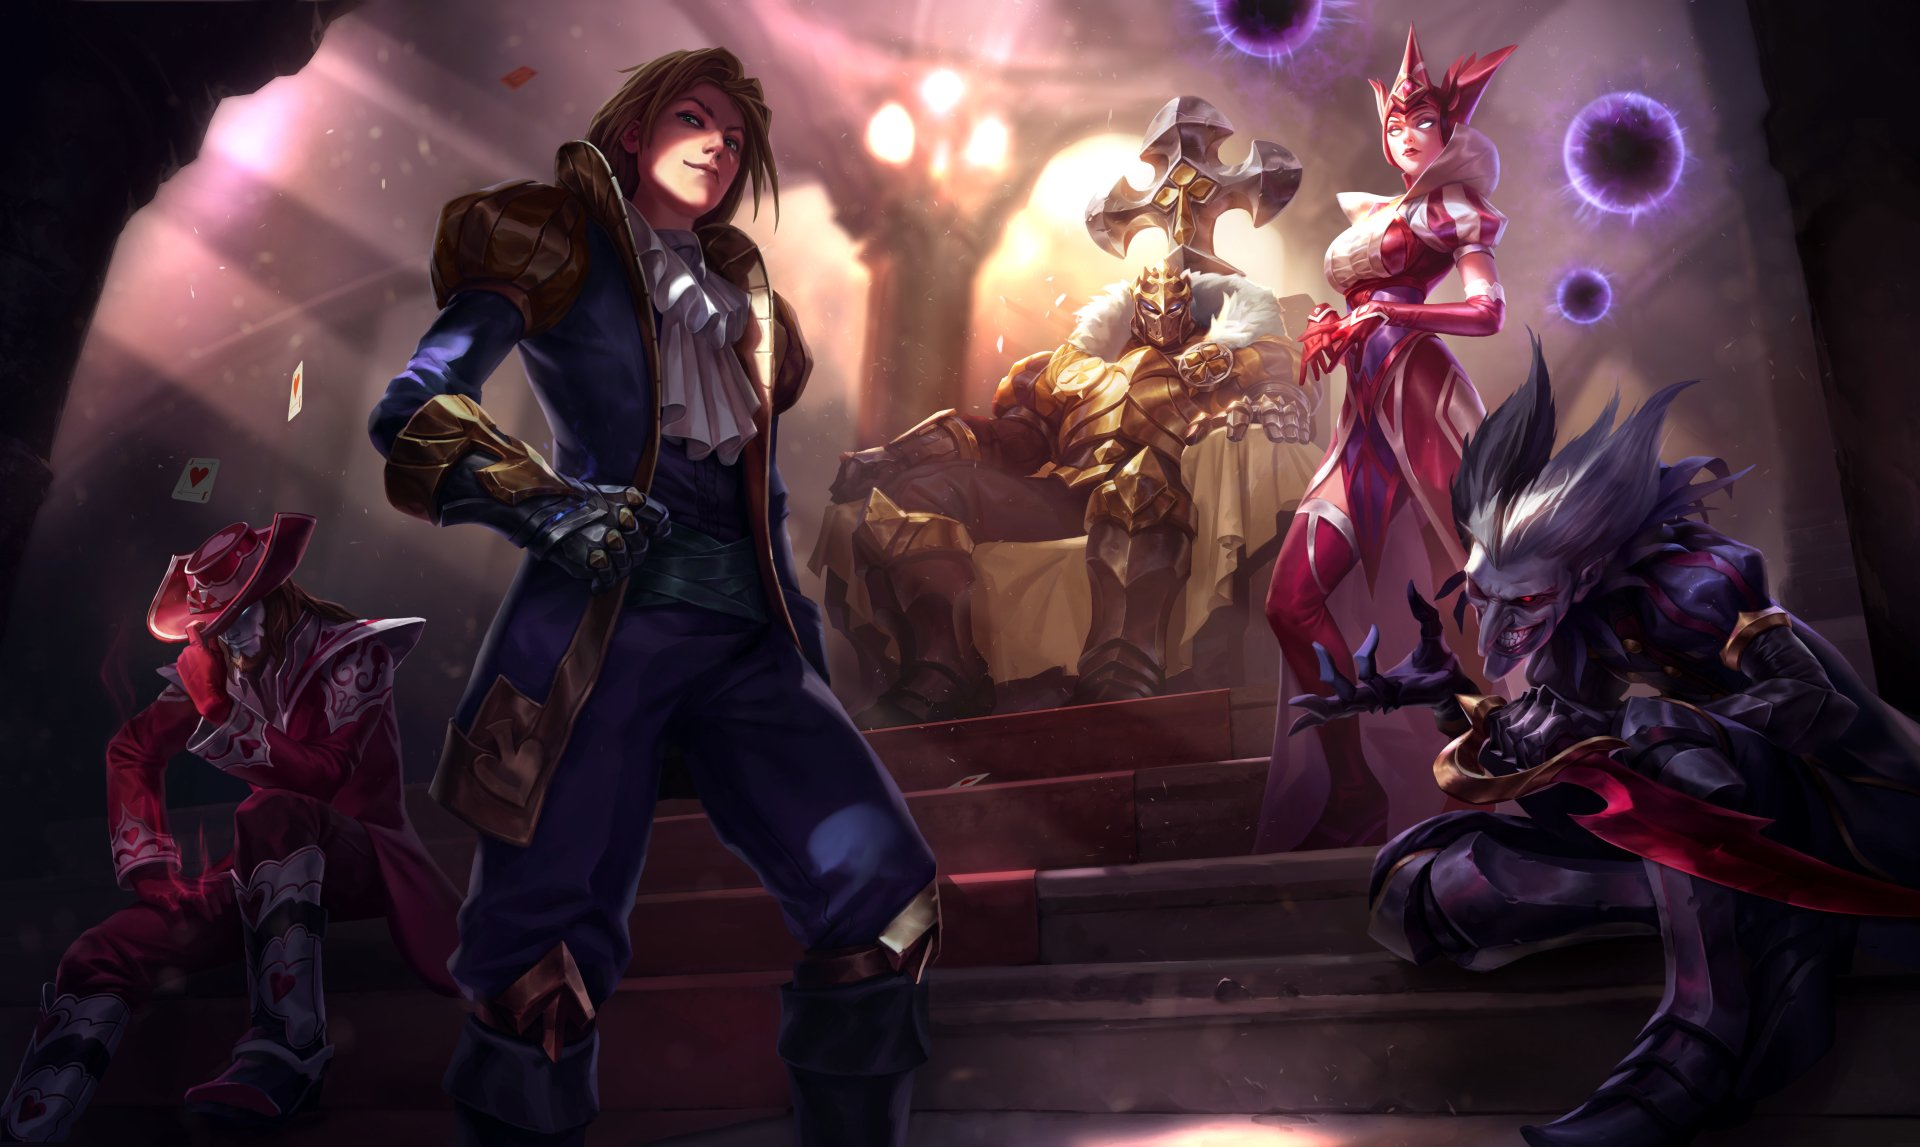 League of legends wallpaper pack - League Of Legends Zed Fond D Cran Hd Arri Re Plan Id 594917